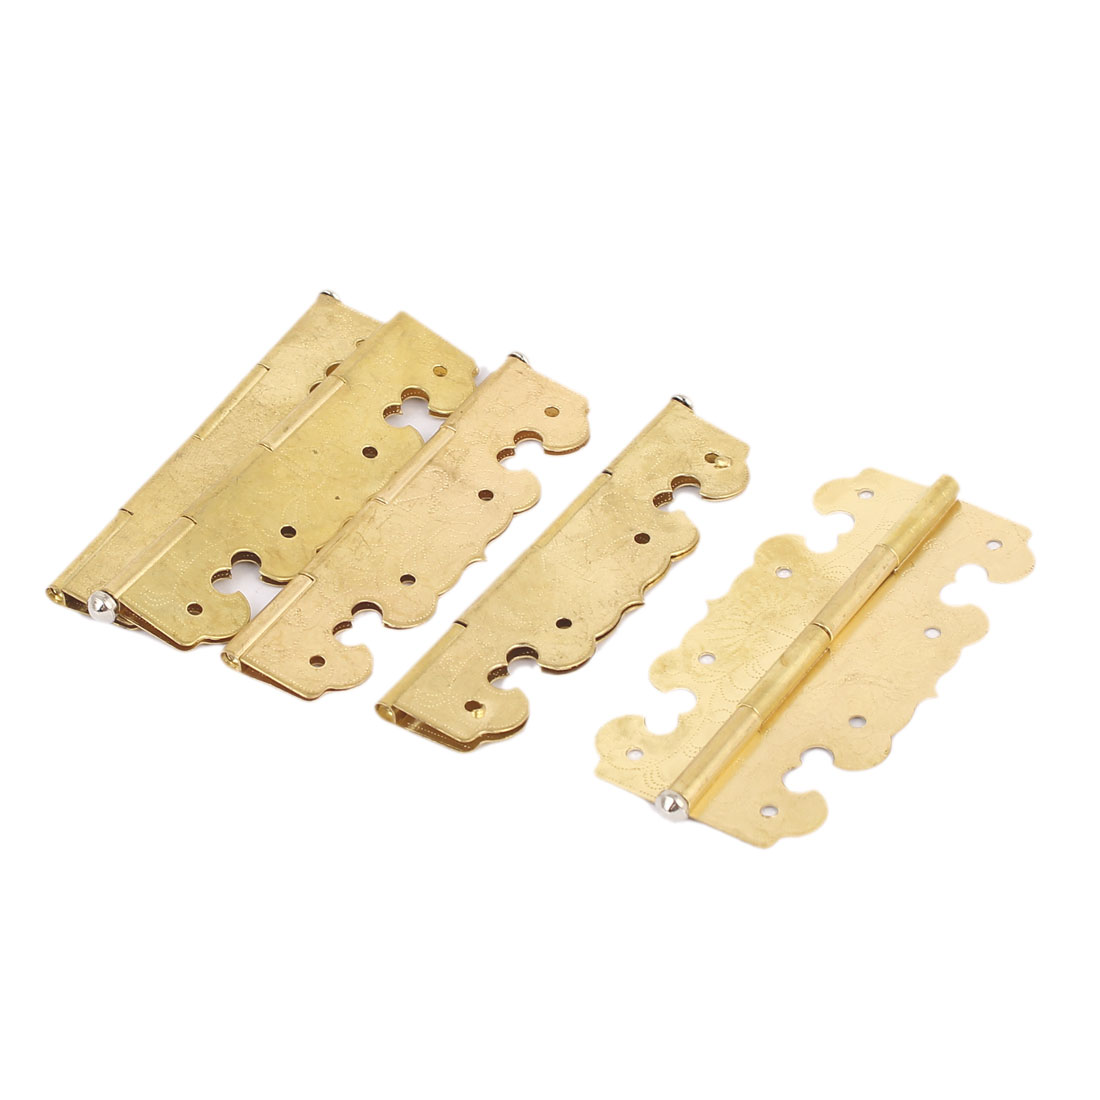 Cupboard Drawer Cabinet Brass Door Butt Hinge 67mm x 34mm 5PCS